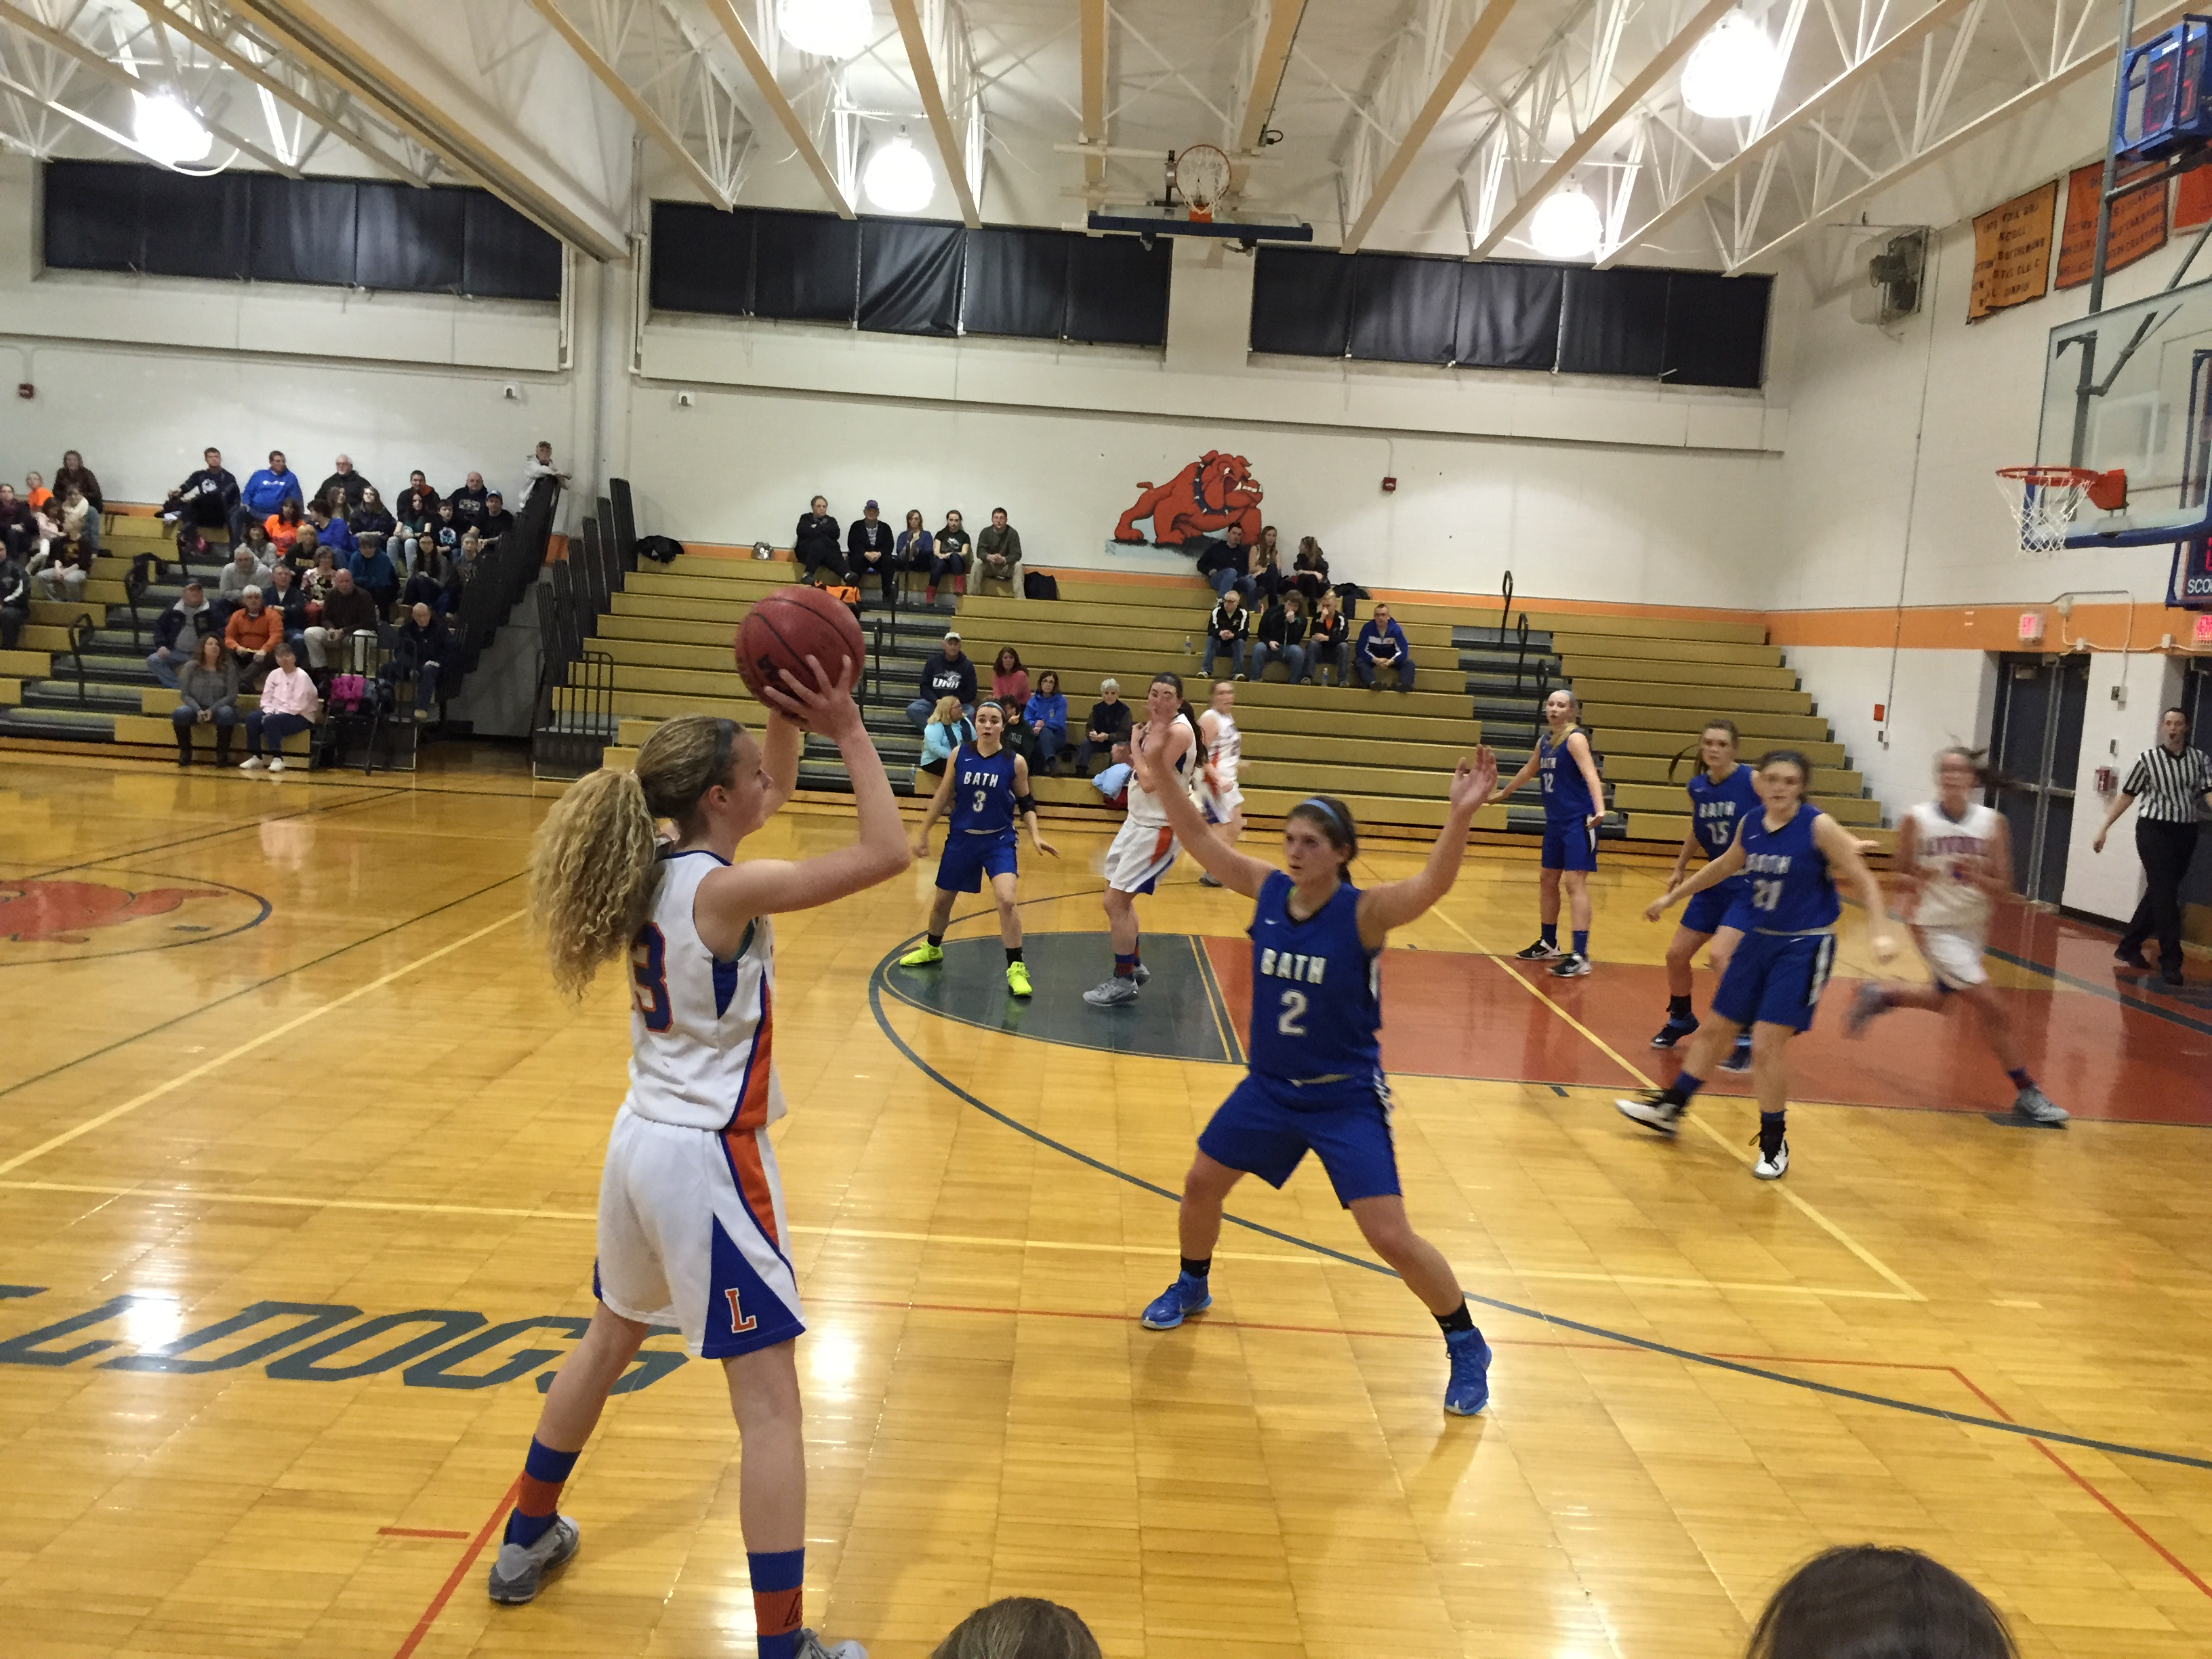 GIRLS BASKETBALL: Livonia Defeats Bath-Haverling